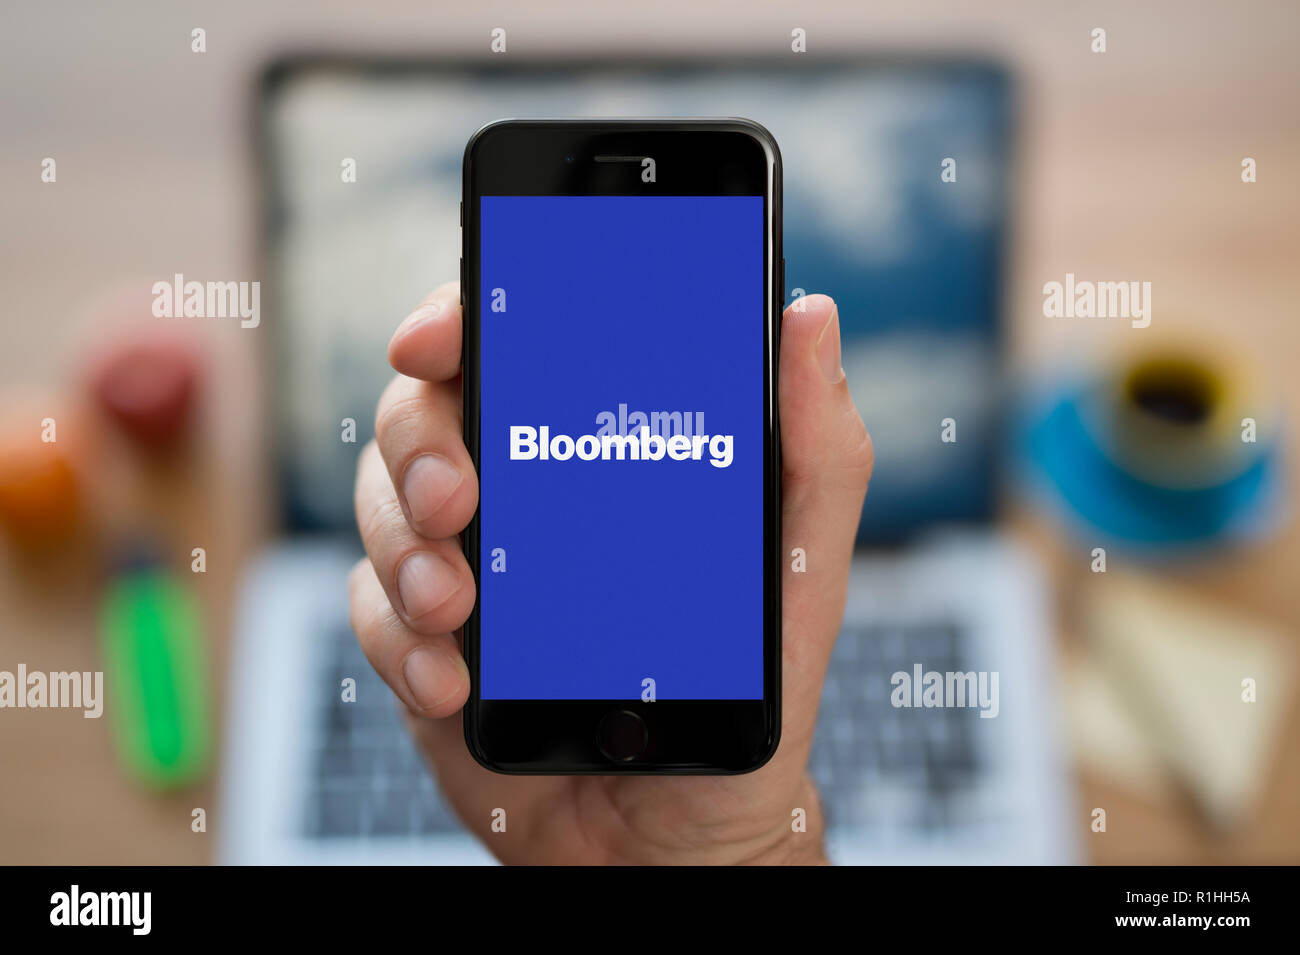 A man looks at his iPhone which displays the Bloomberg logo, while sat at his computer desk (Editorial use only). - Stock Image